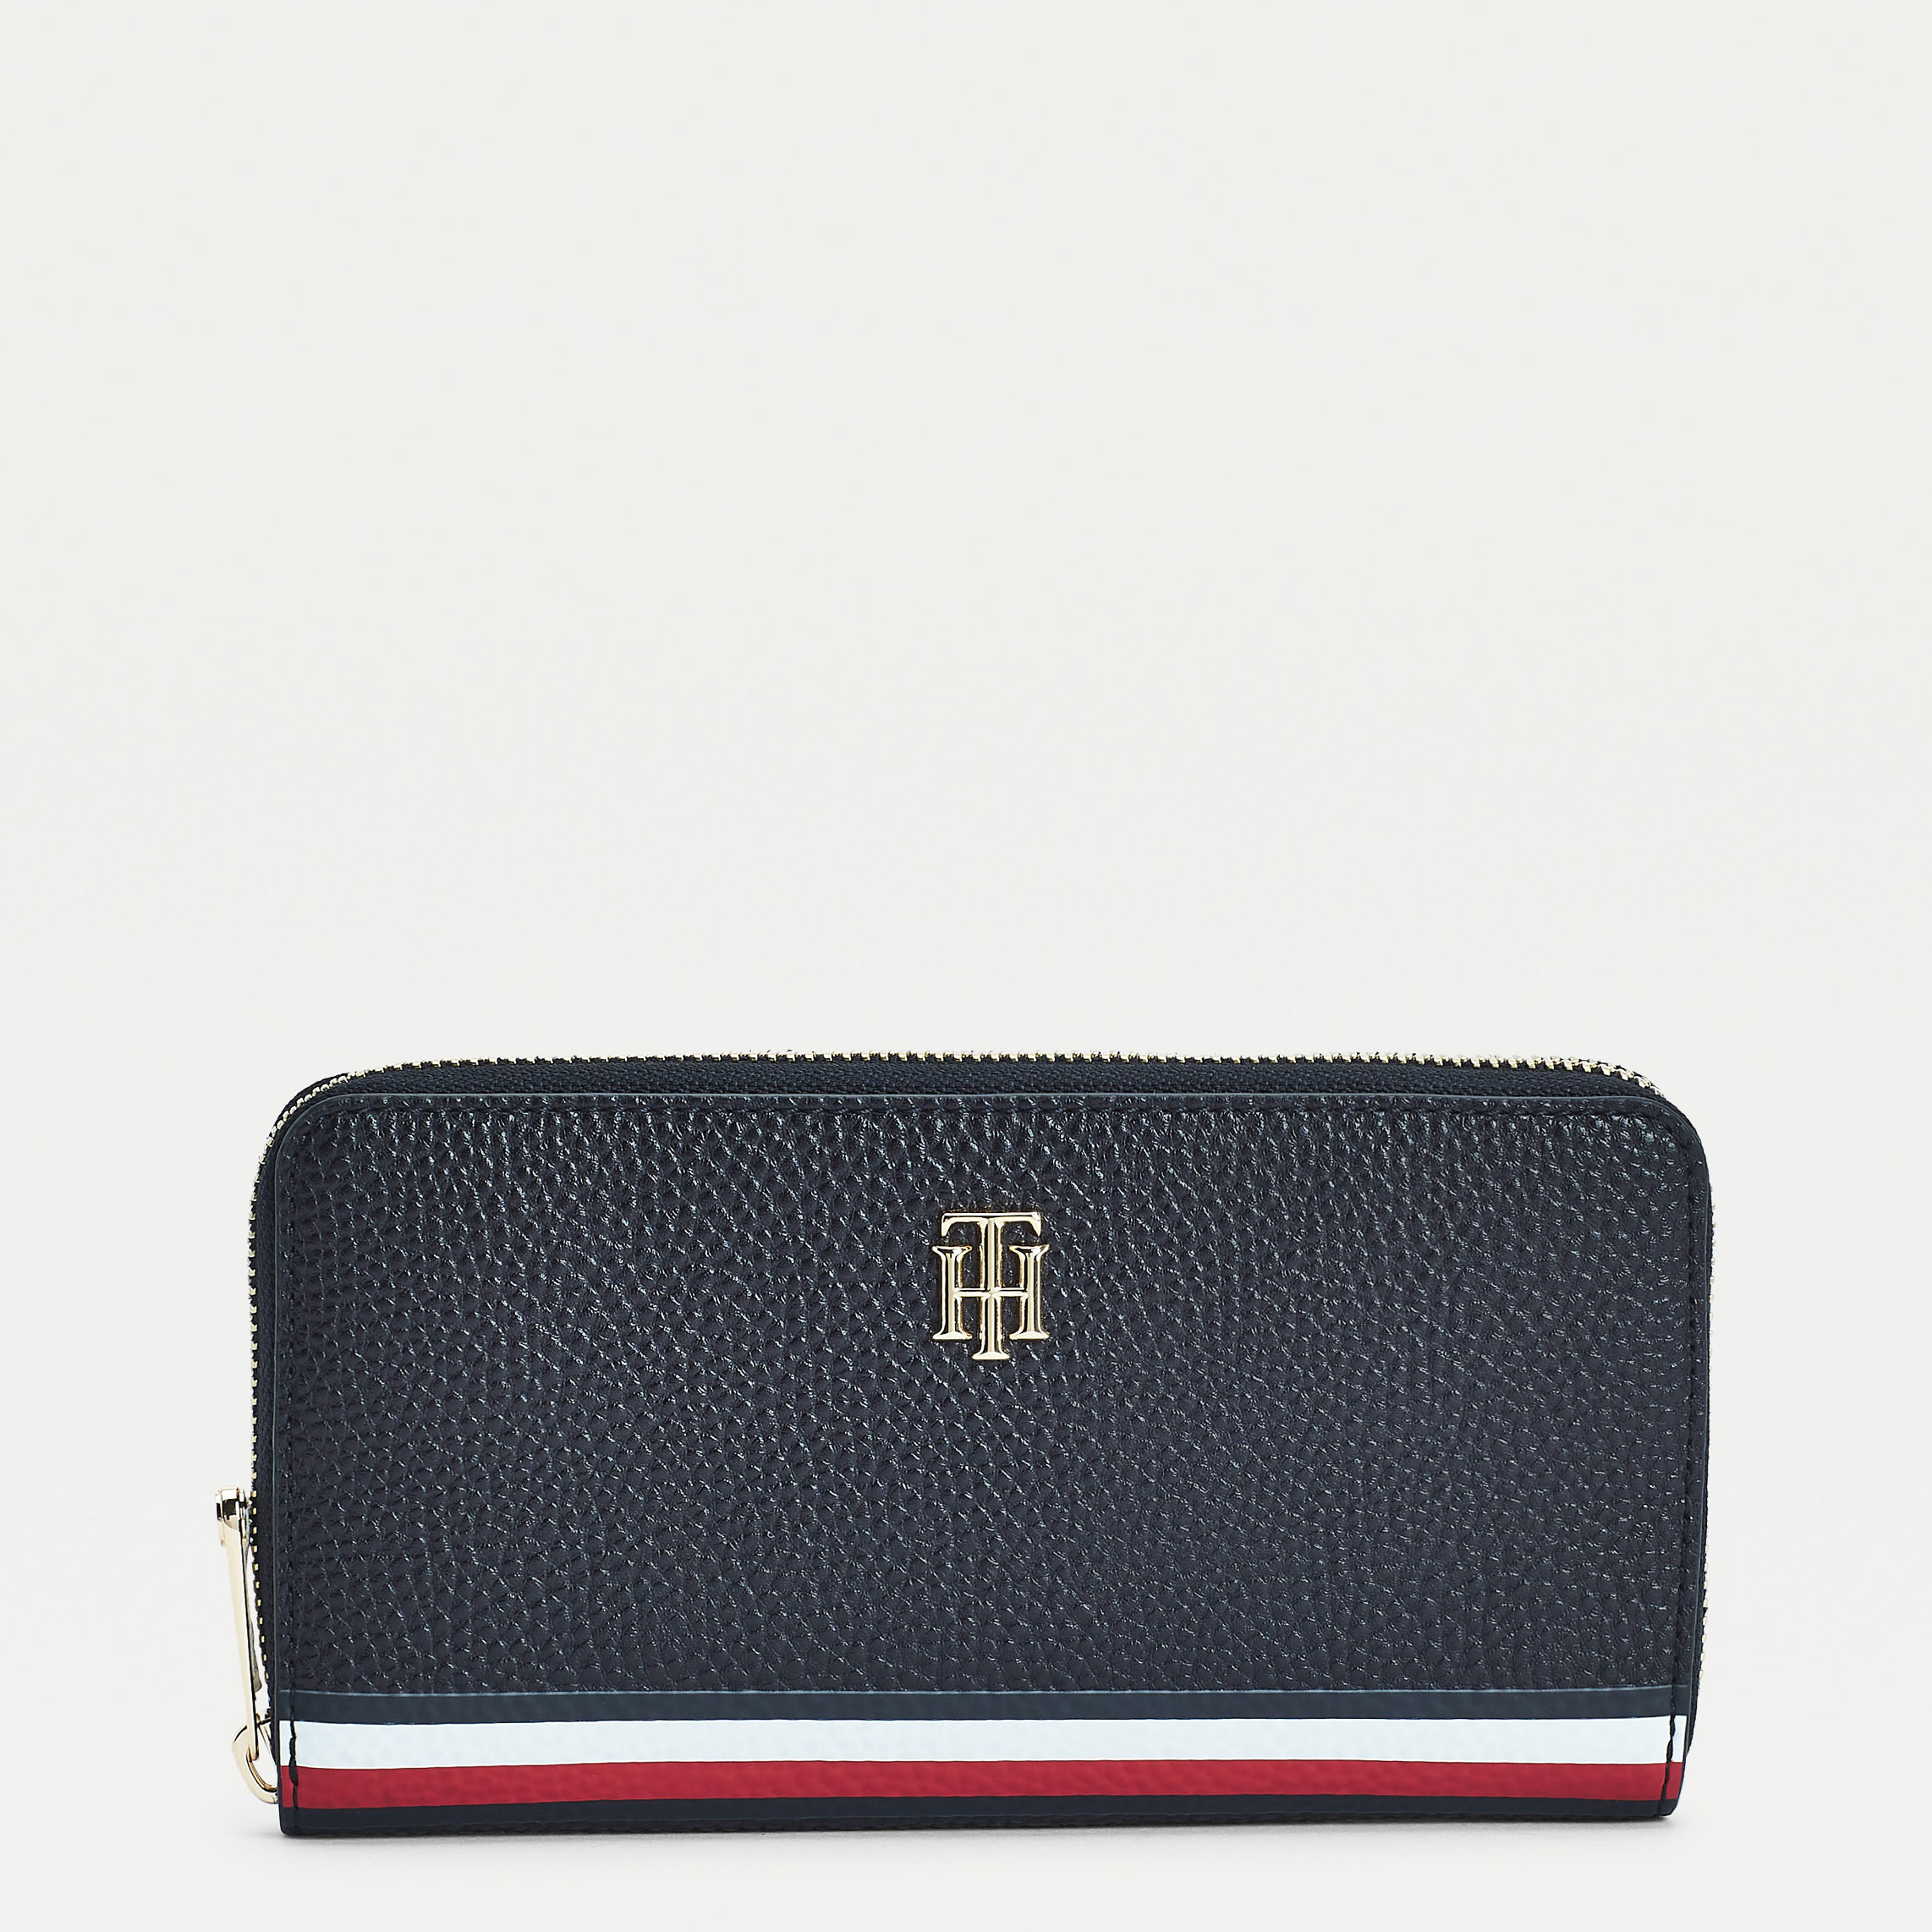 TOMMY HILFIGER Marroquinería Billetero Th Element Lrg Za Corp AW0AW10540-0GY